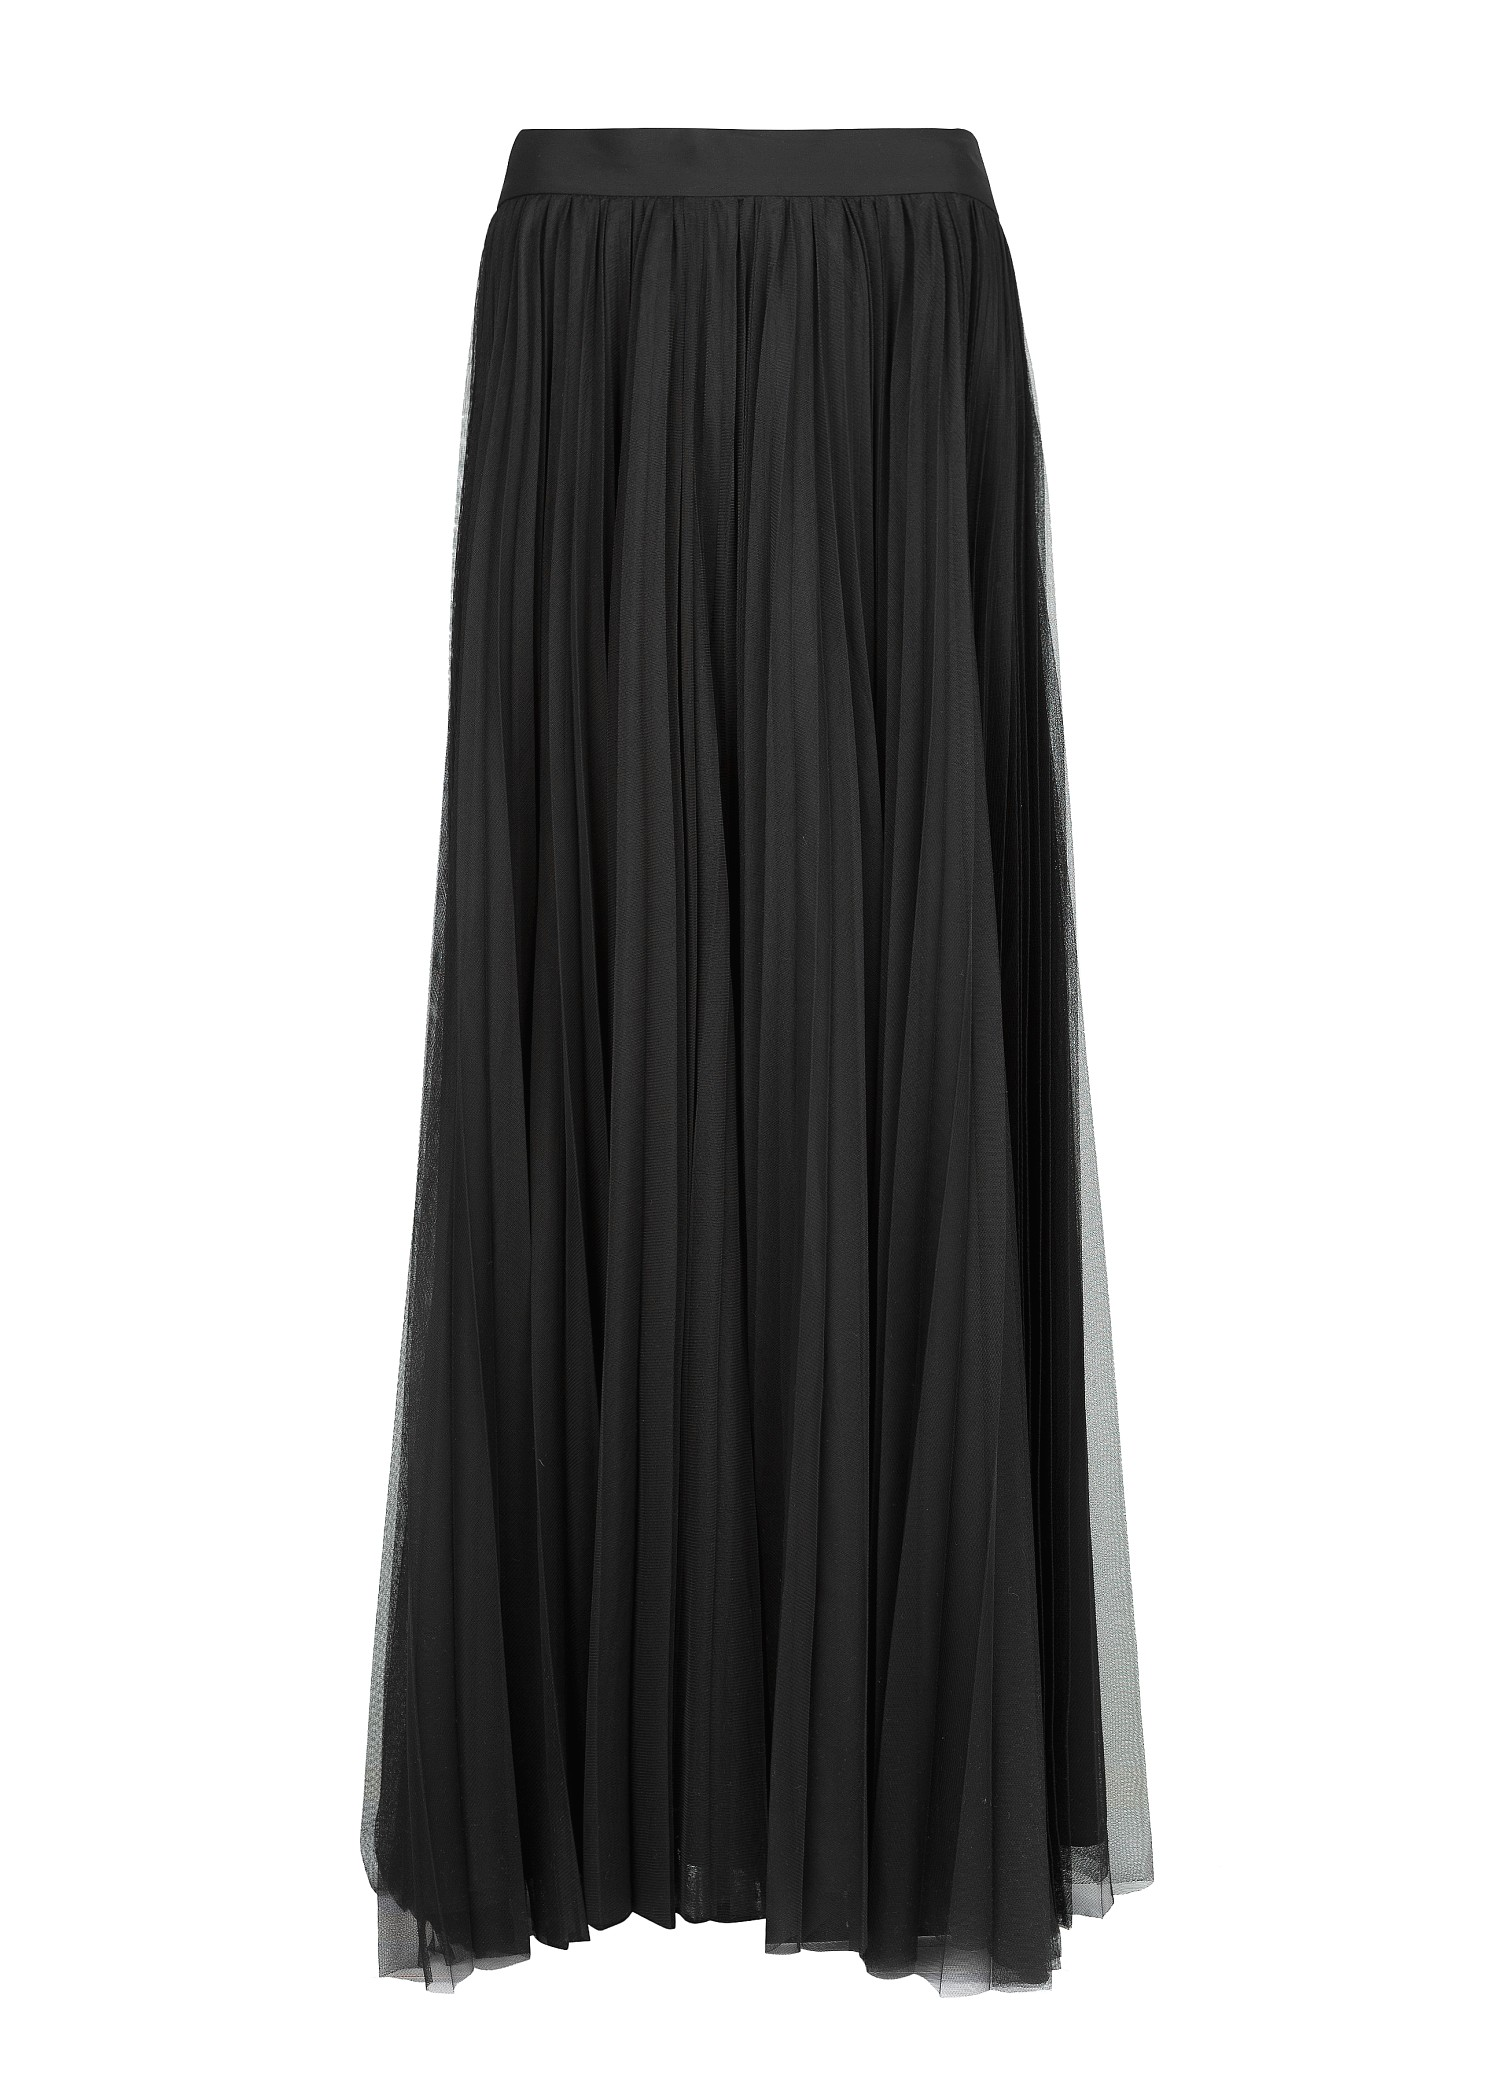 Finish off your costume with this long, sheer tulle skirt featuring a satin waist tie. (Bodysuit not included.)